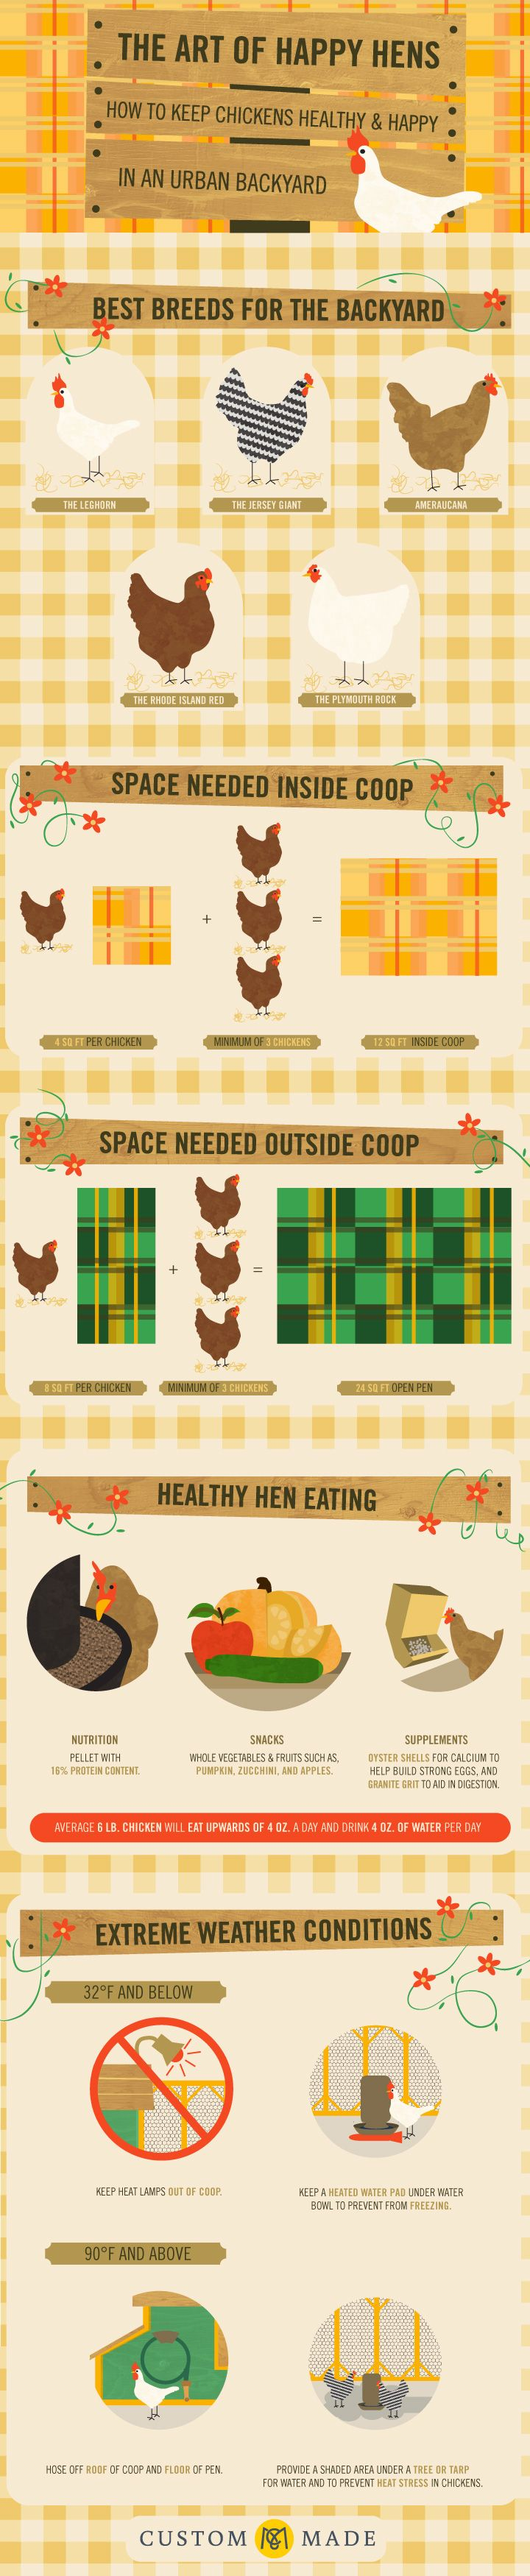 Keeping #chickens Healthy And Happy In An Urban Backyard.  Infographic